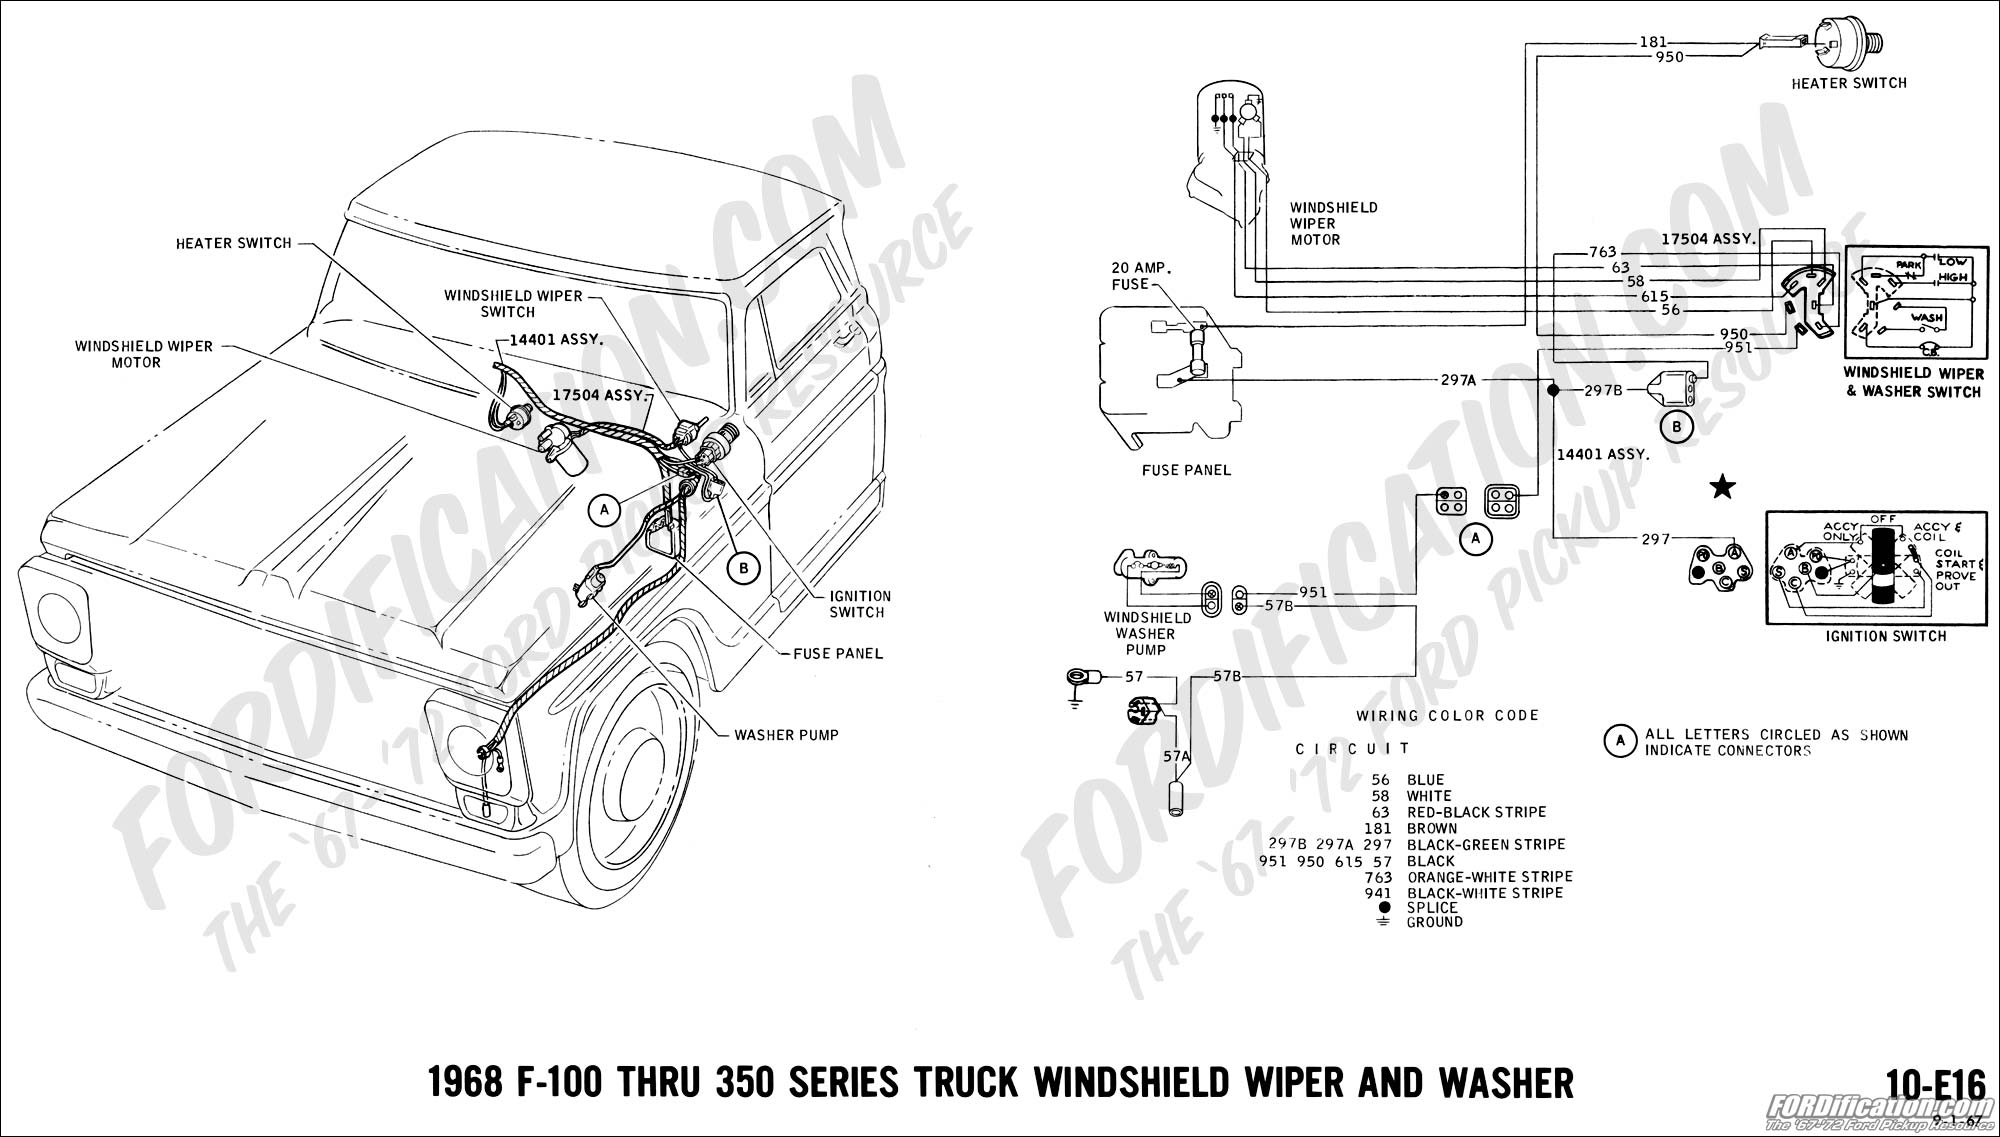 1985 ford f 150 wiring diagram 85 ford ranger fuse box 1985 ford f250 fuse box diagram 1984 ford  85 ford ranger fuse box 1985 ford f250